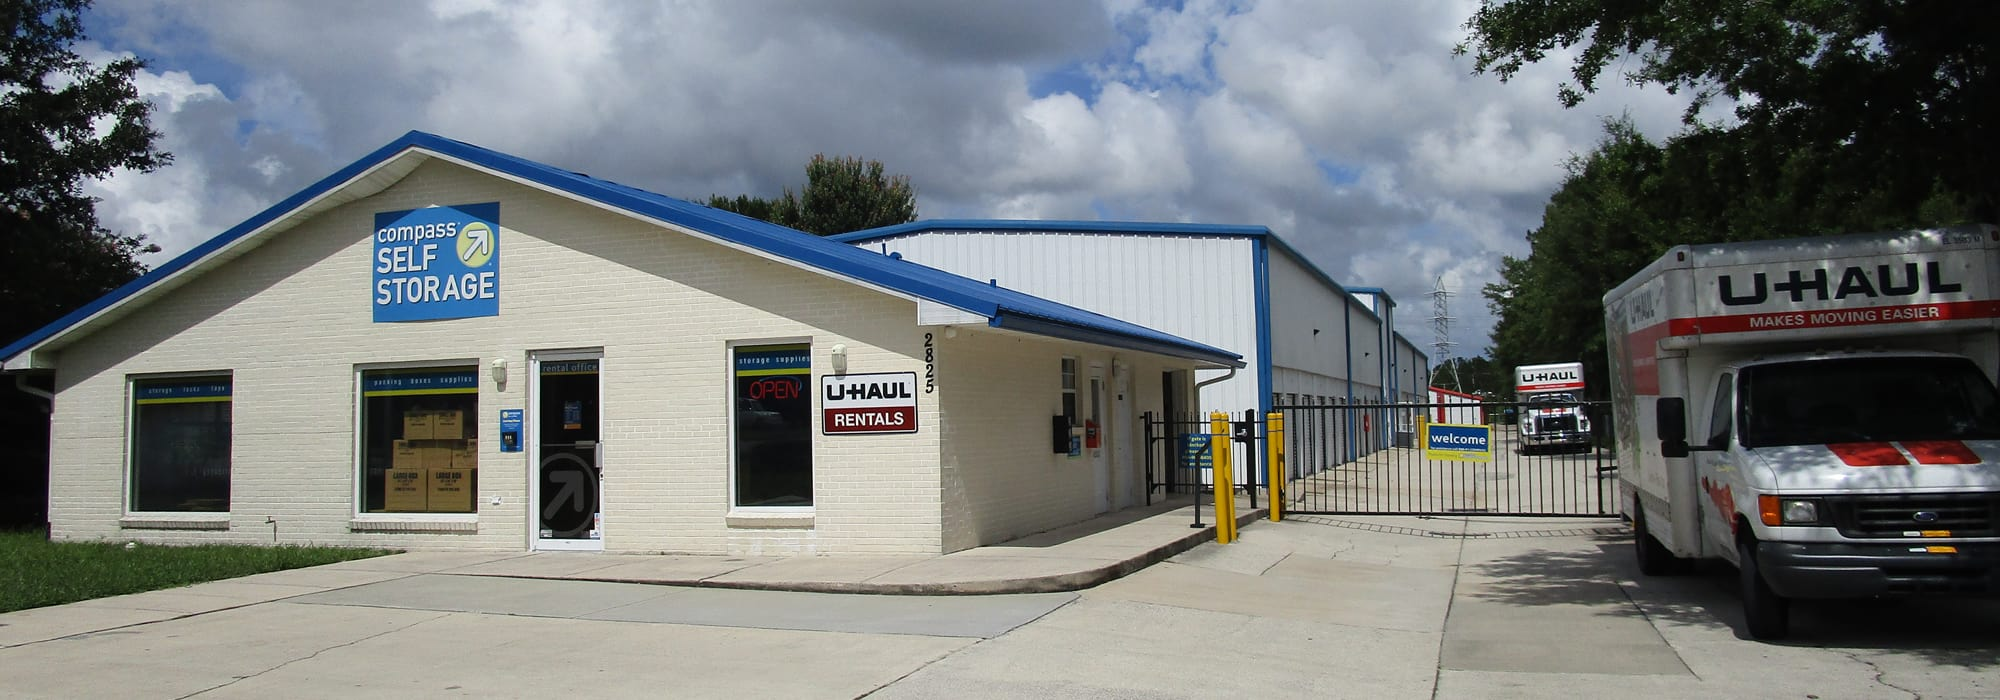 Self storage in Jacksonville FL